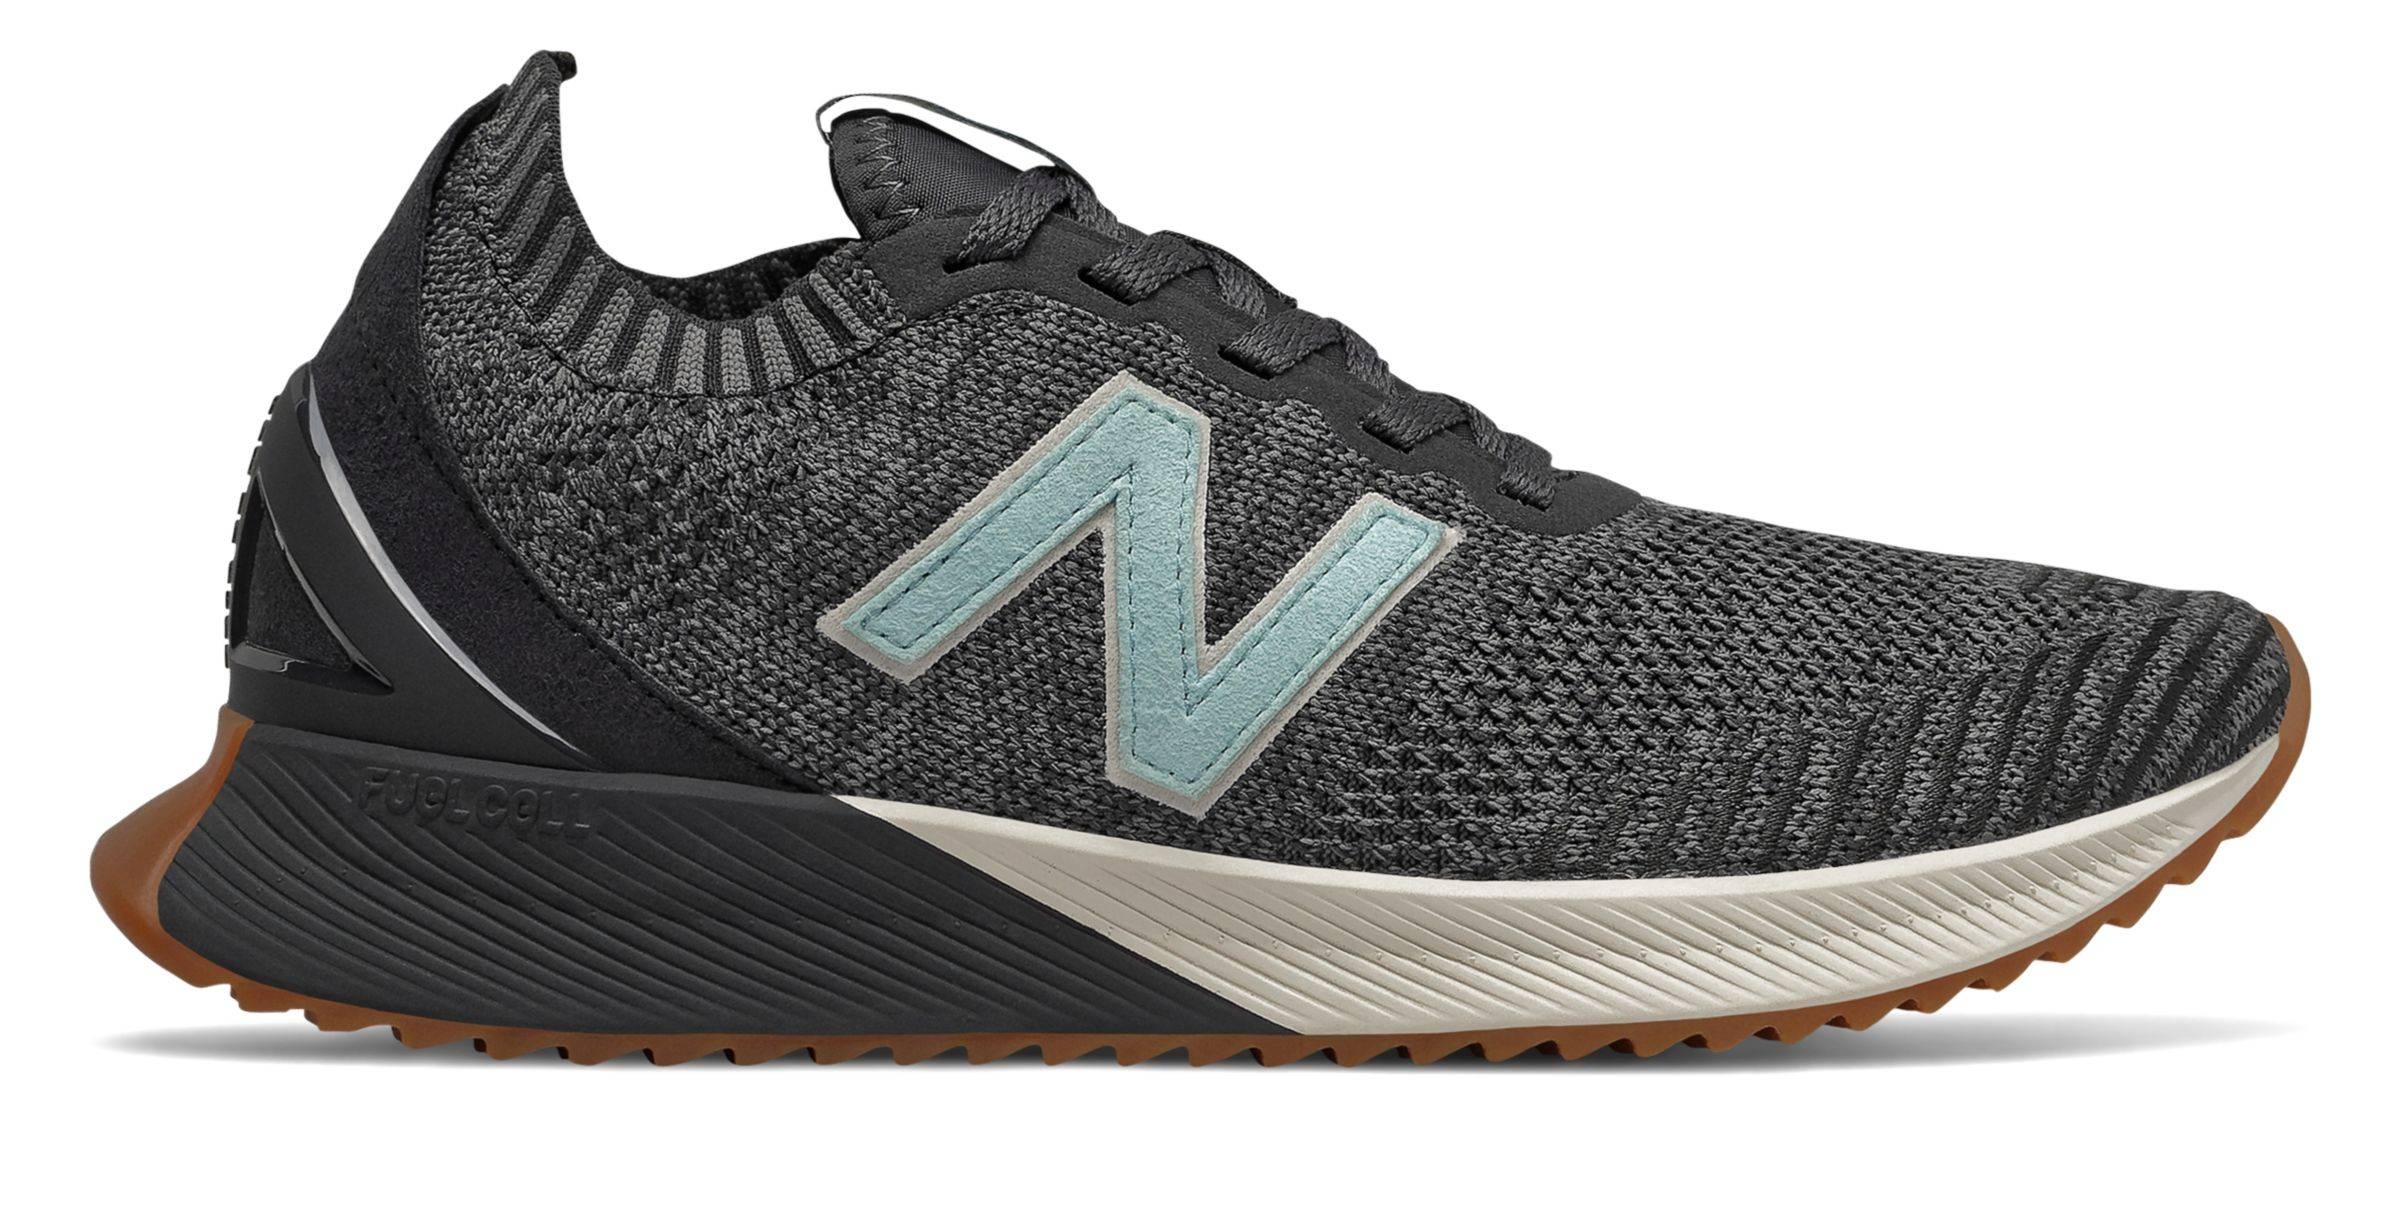 New Balance Women's FuelCell Echo Heritage Shoes Black with Grey & Blue  - Black with Grey & Blue - Size: 5